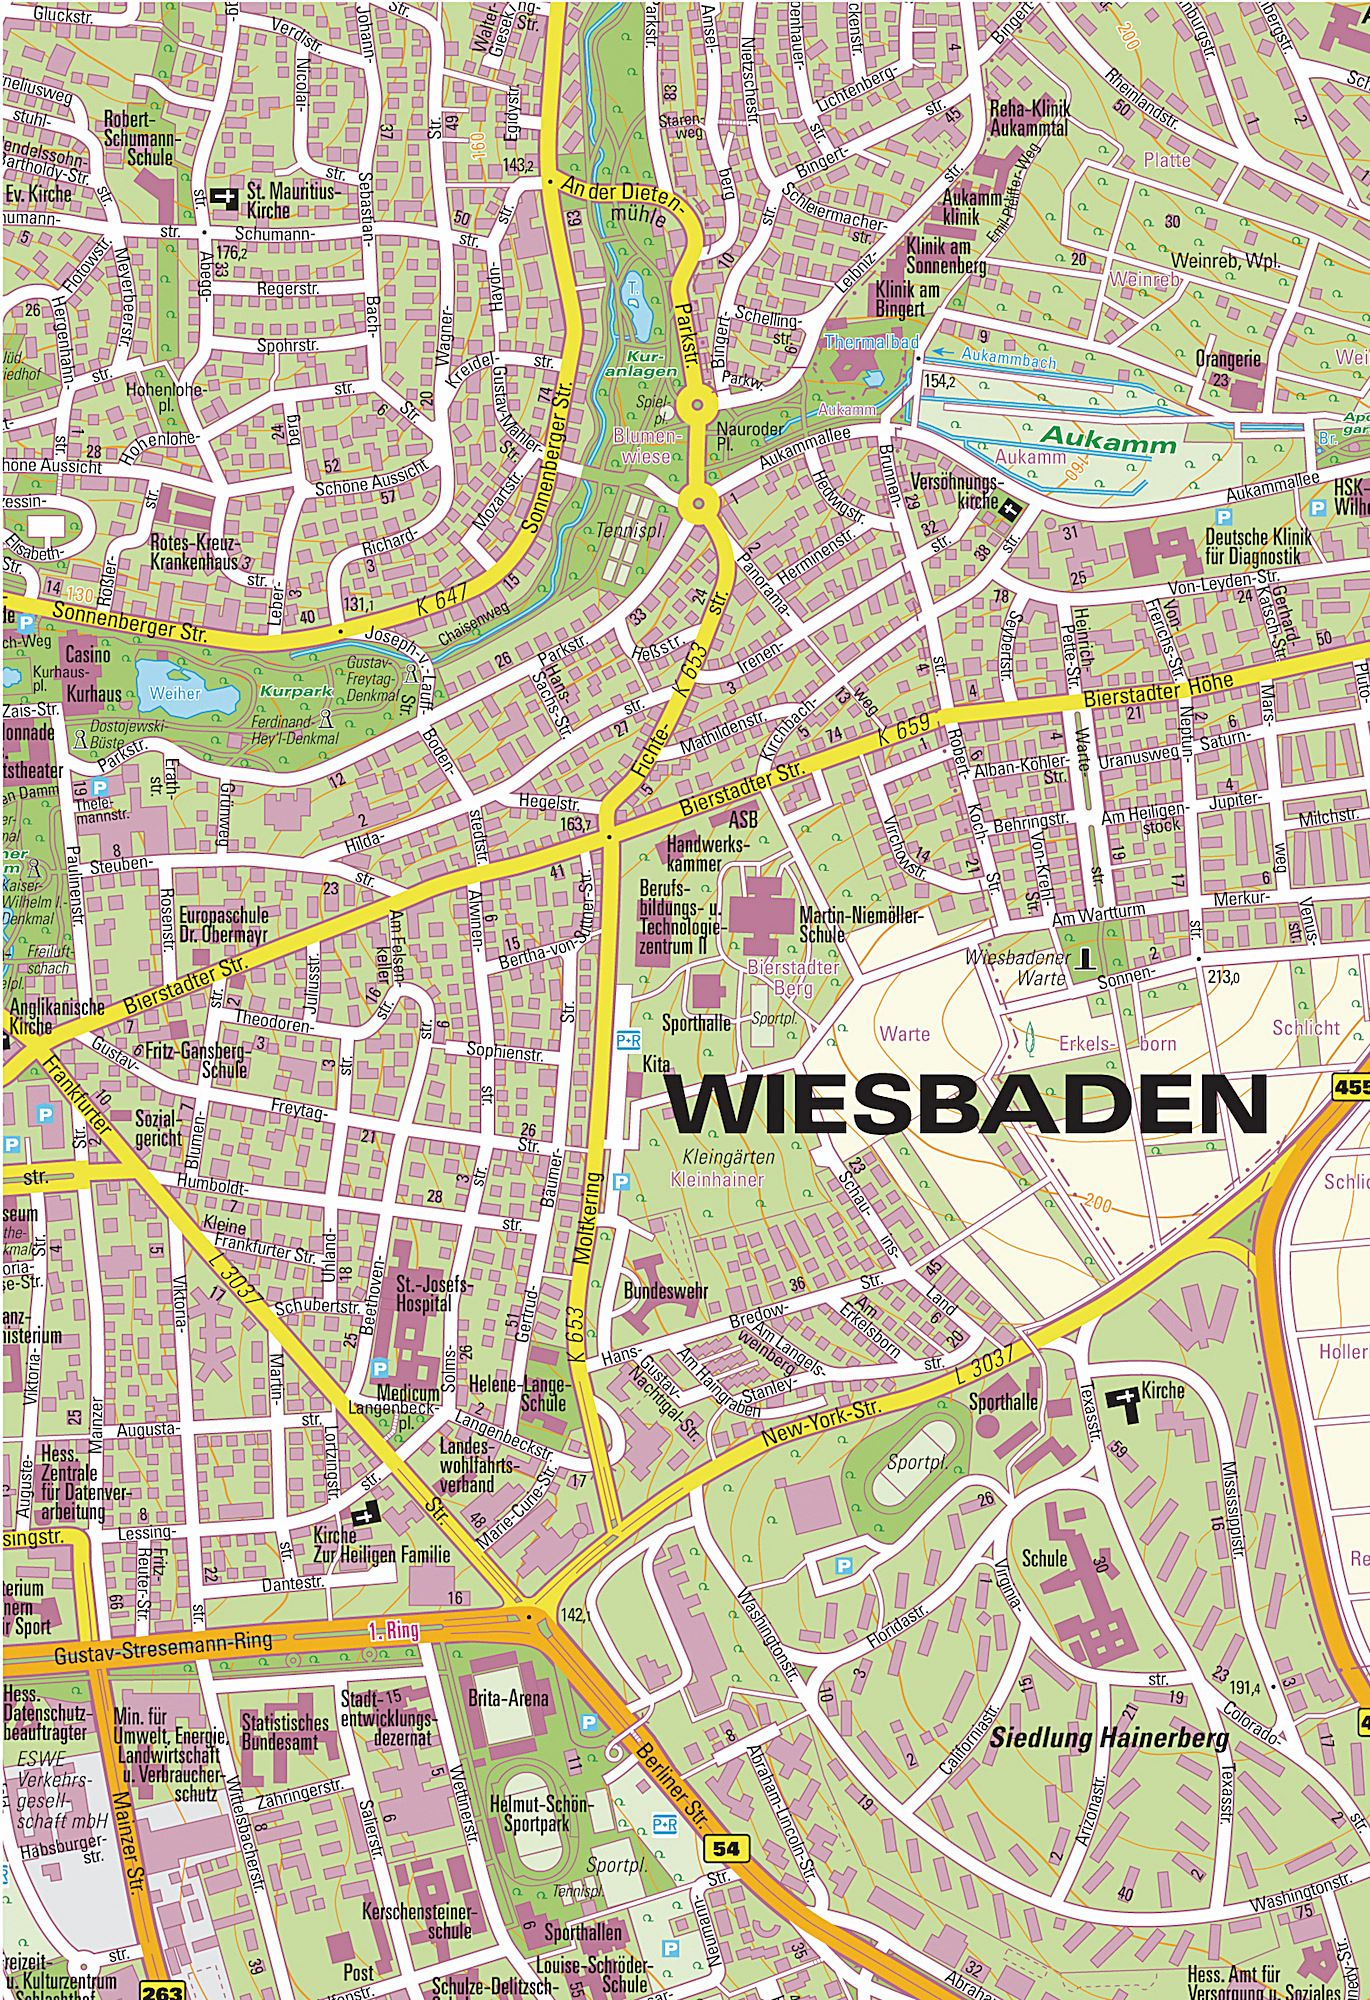 Large Wiesbaden Maps for Free Download and Print HighResolution